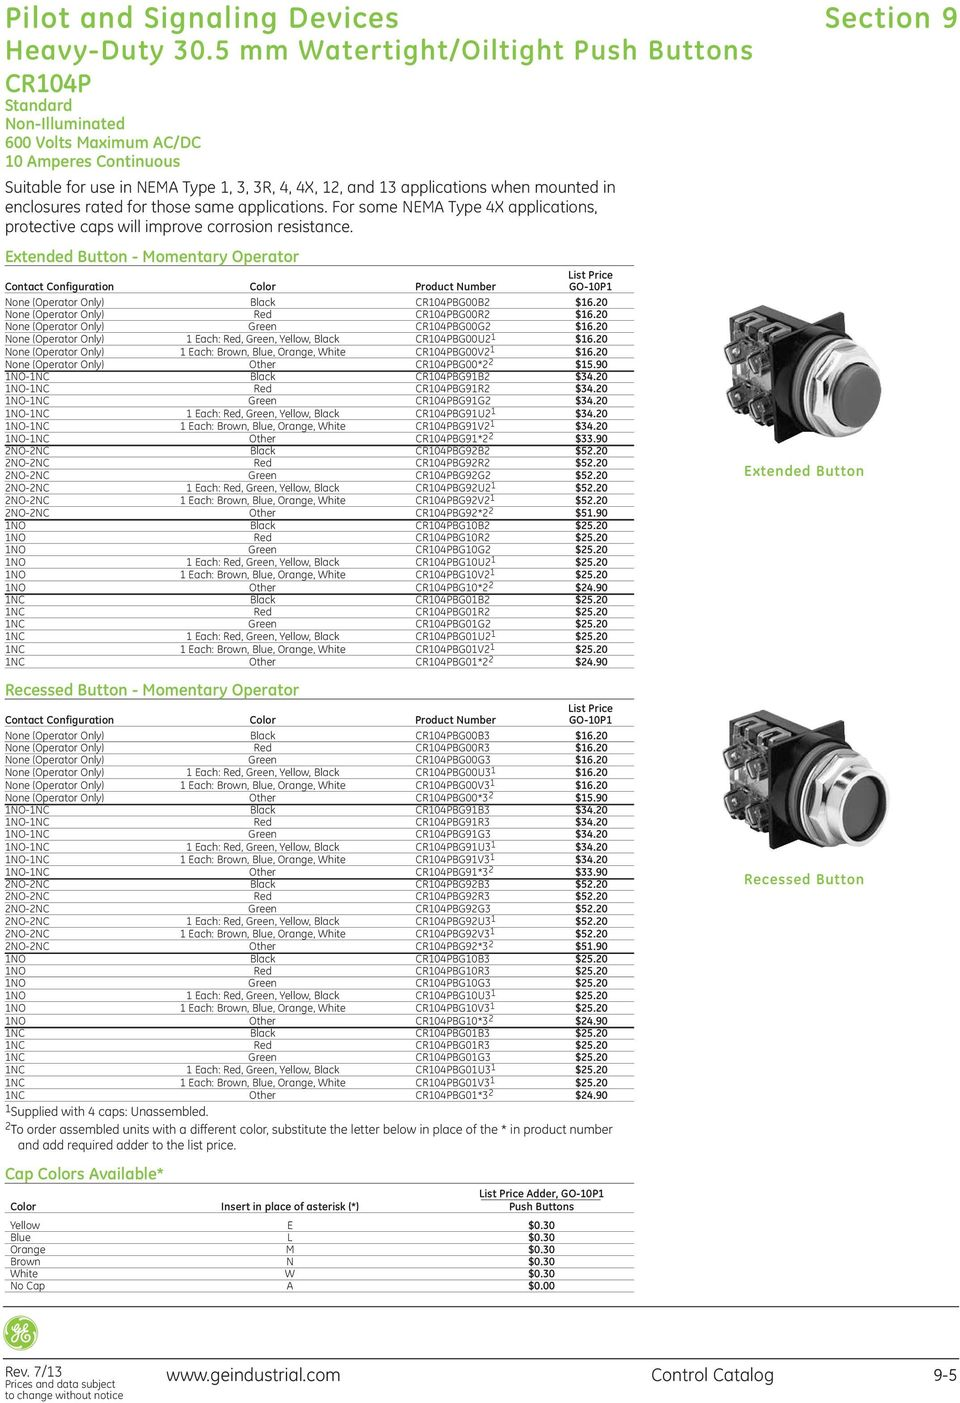 Pilot and Signaling Devices. Section 9. Control Catalog PDF on